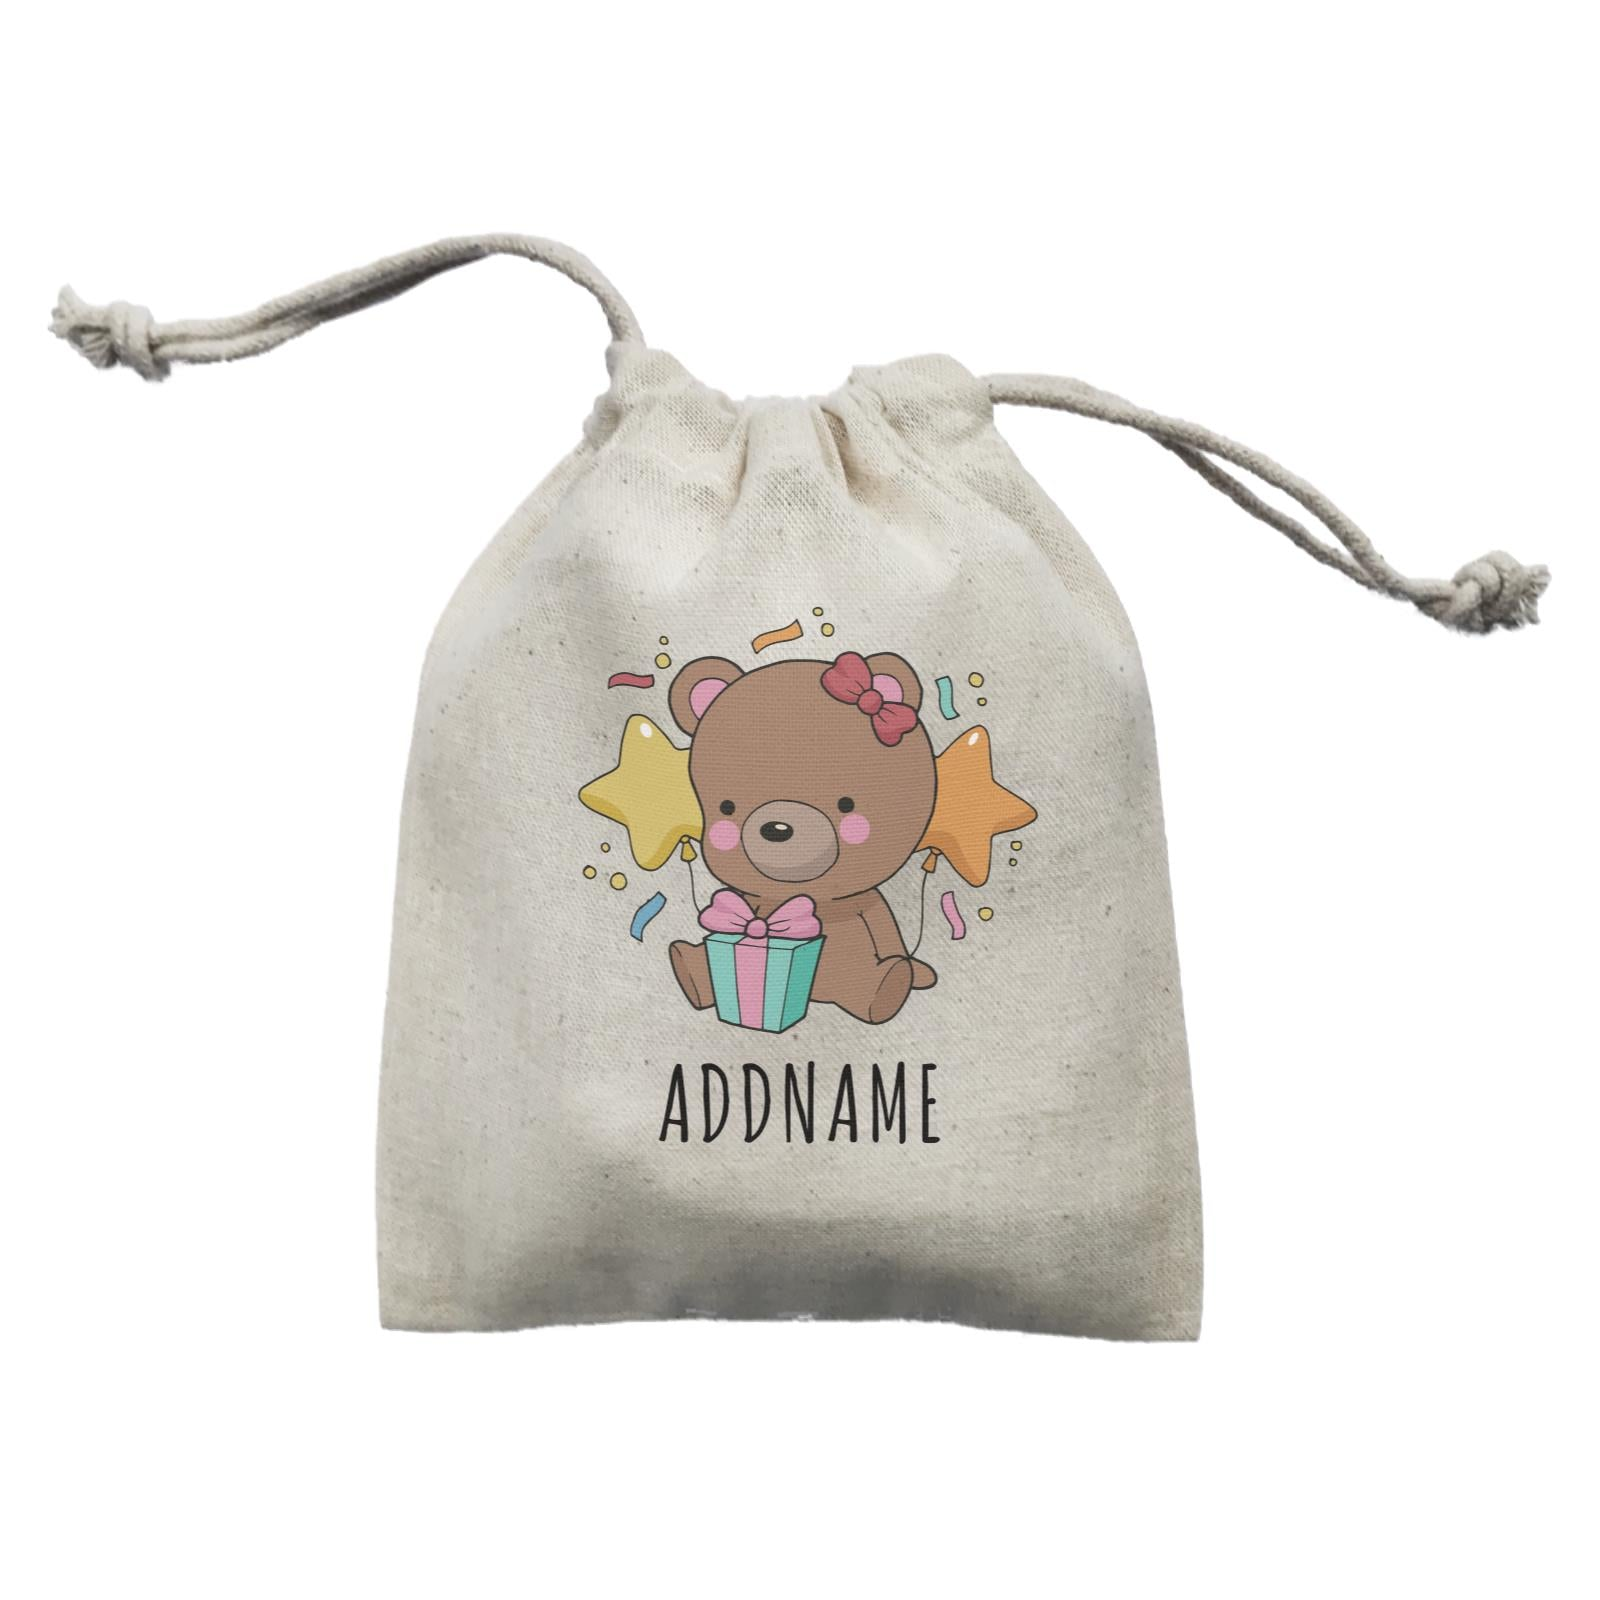 Birthday Sketch Animals Bear with Present Addname Mini Accessories Mini Pouch